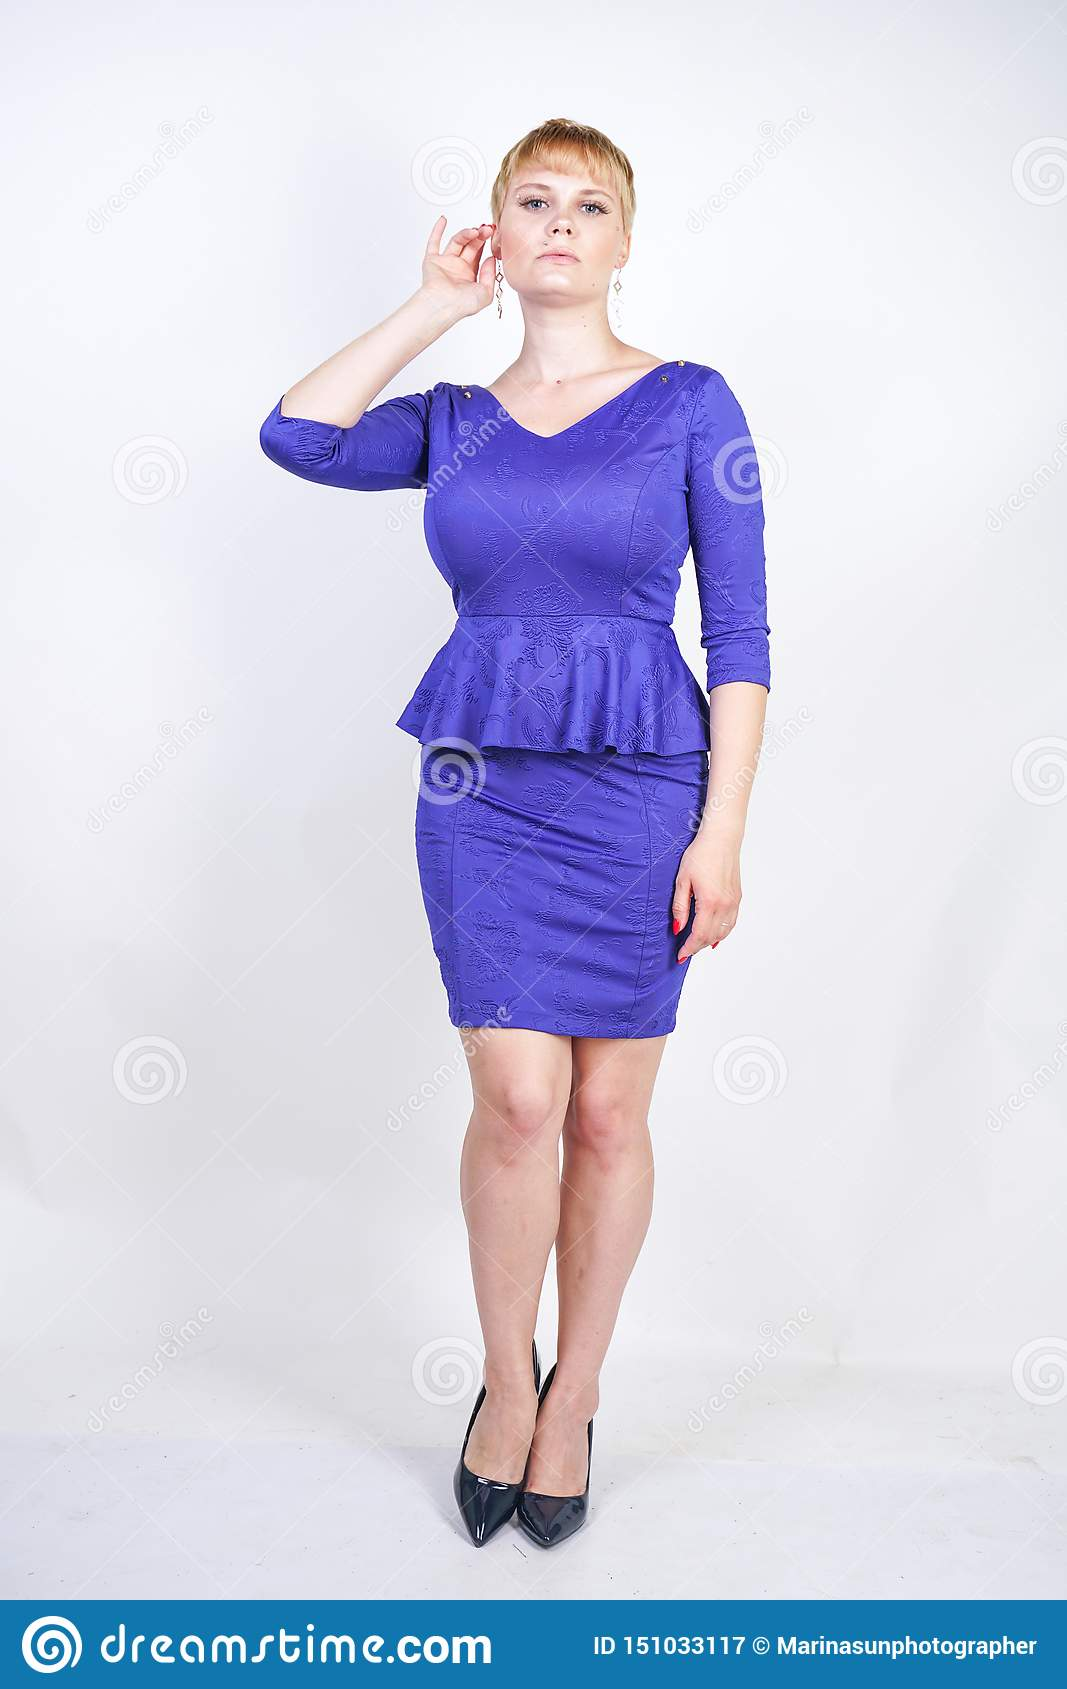 Beautiful Caucasian Girl With Short Hair And Plus Size Body Dressed In Blue Medium Length Dress In Business Style With Peplum At T Stock Image Image Of Figure Business 151033117